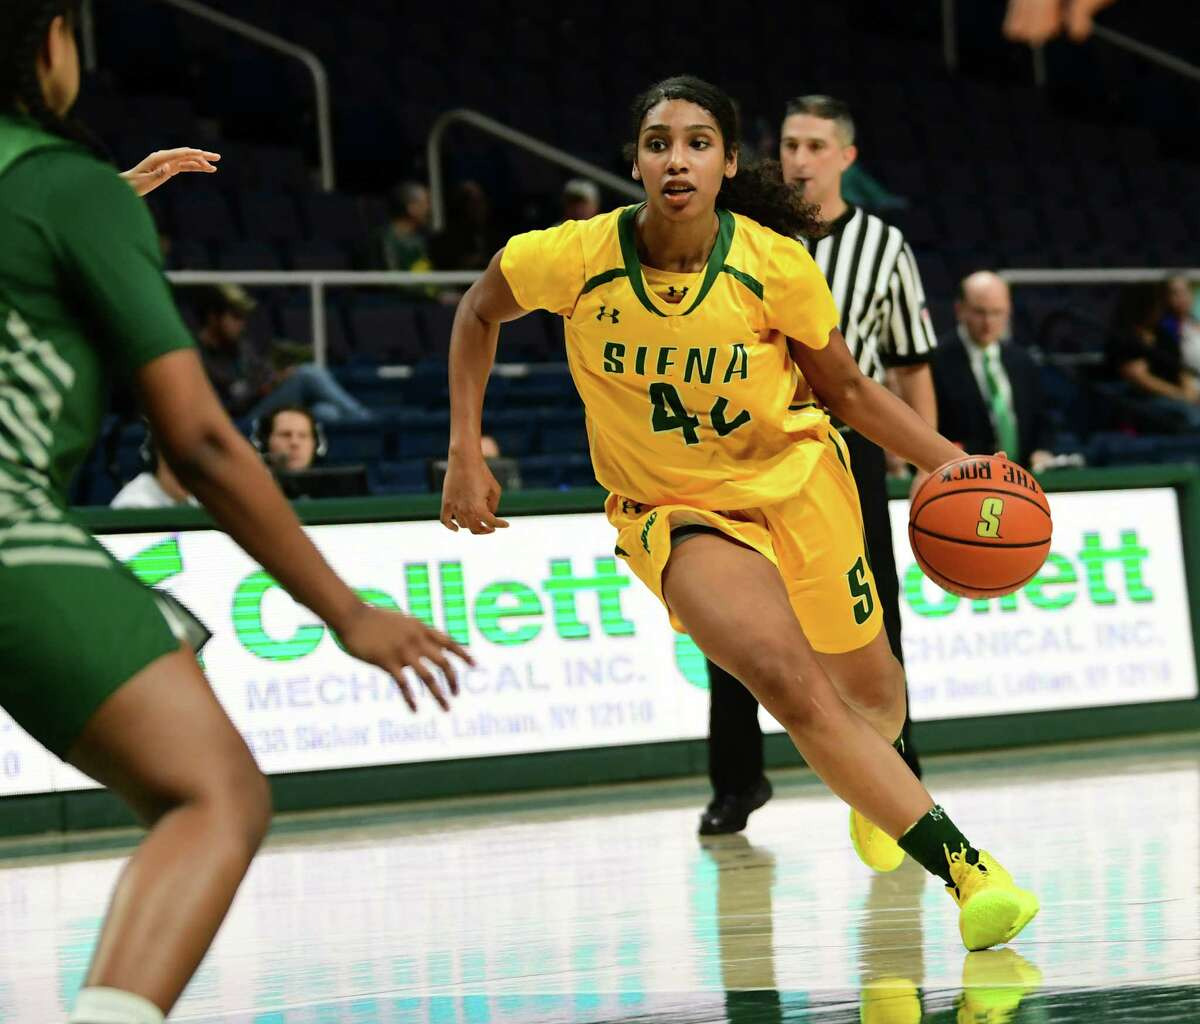 Siena's Sabrina Piper dribbles the ball during a basketball game against Binghamton at the Times Union Center on Tuesday, Nov. 5, 2019 in Albany, N.Y. (Lori Van Buren/Times Union)